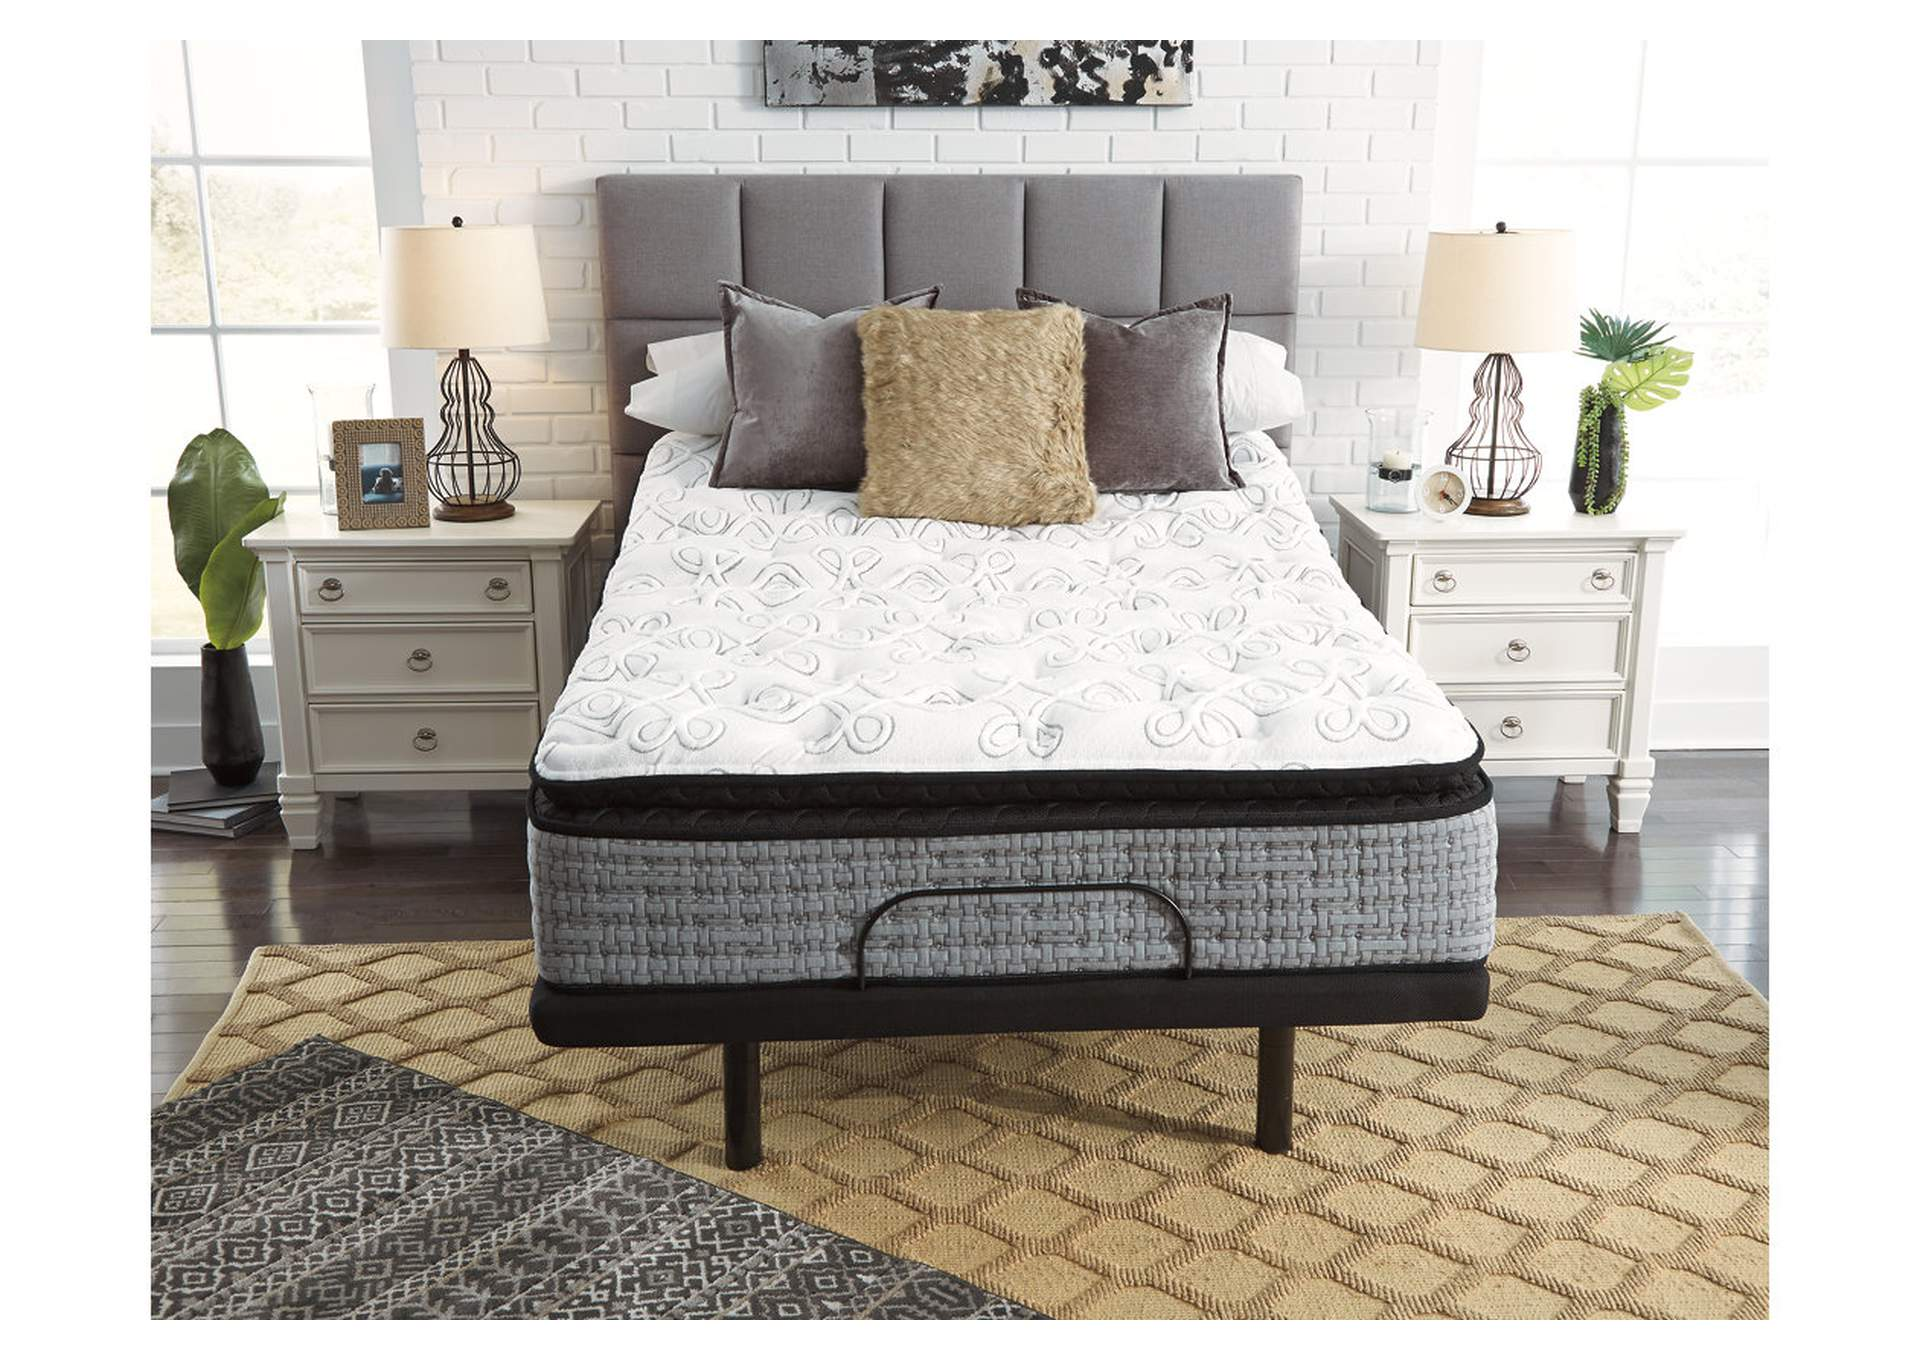 Mt Rogers Ltd Pillowtop King Mattress w/Foundation,Sierra Sleep by Ashley